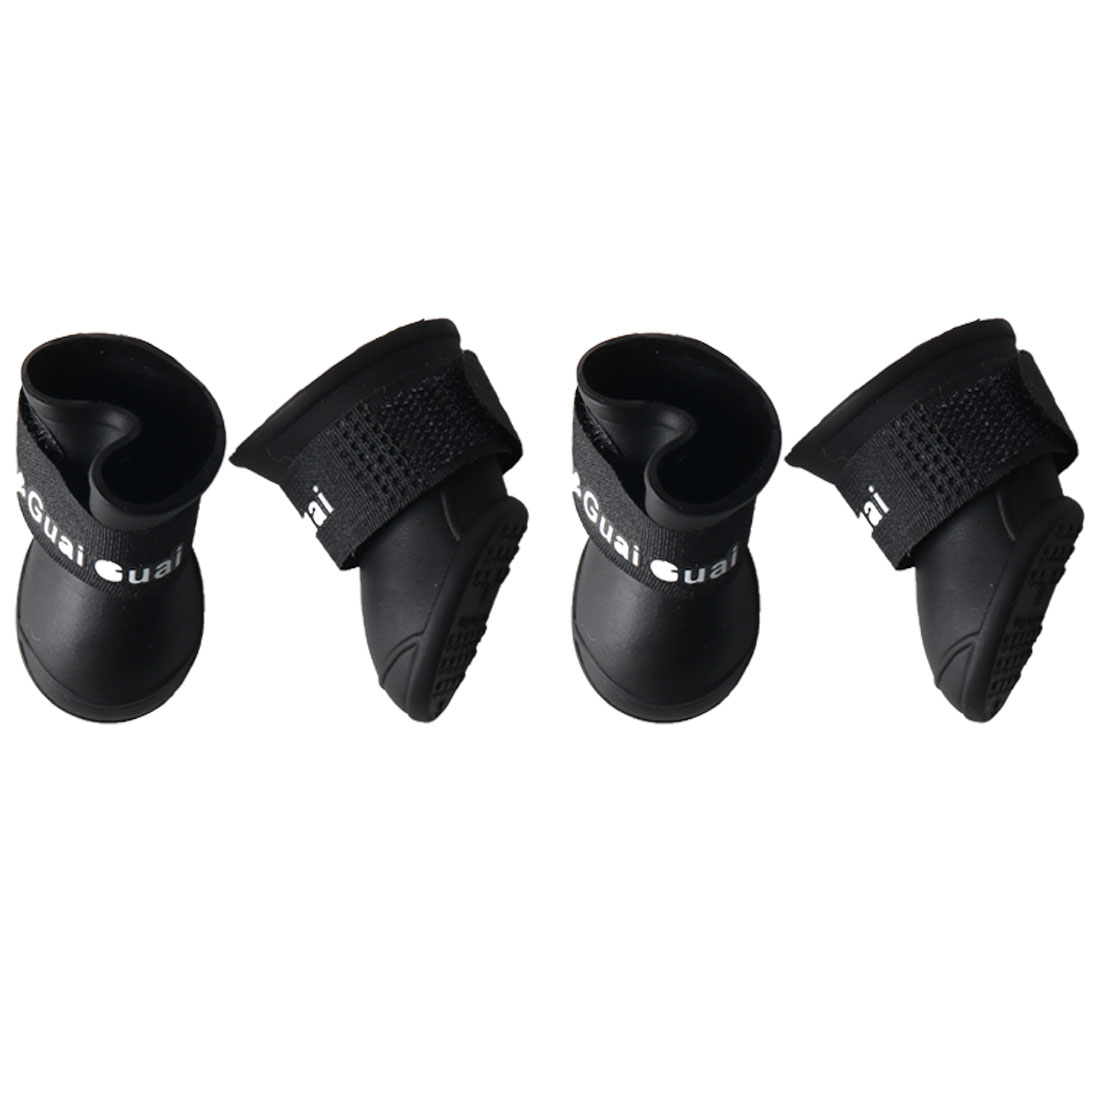 Dog Rain Shoes Pet Boots Water Resistant for Dog Paw Protectors Black 4pcs, S